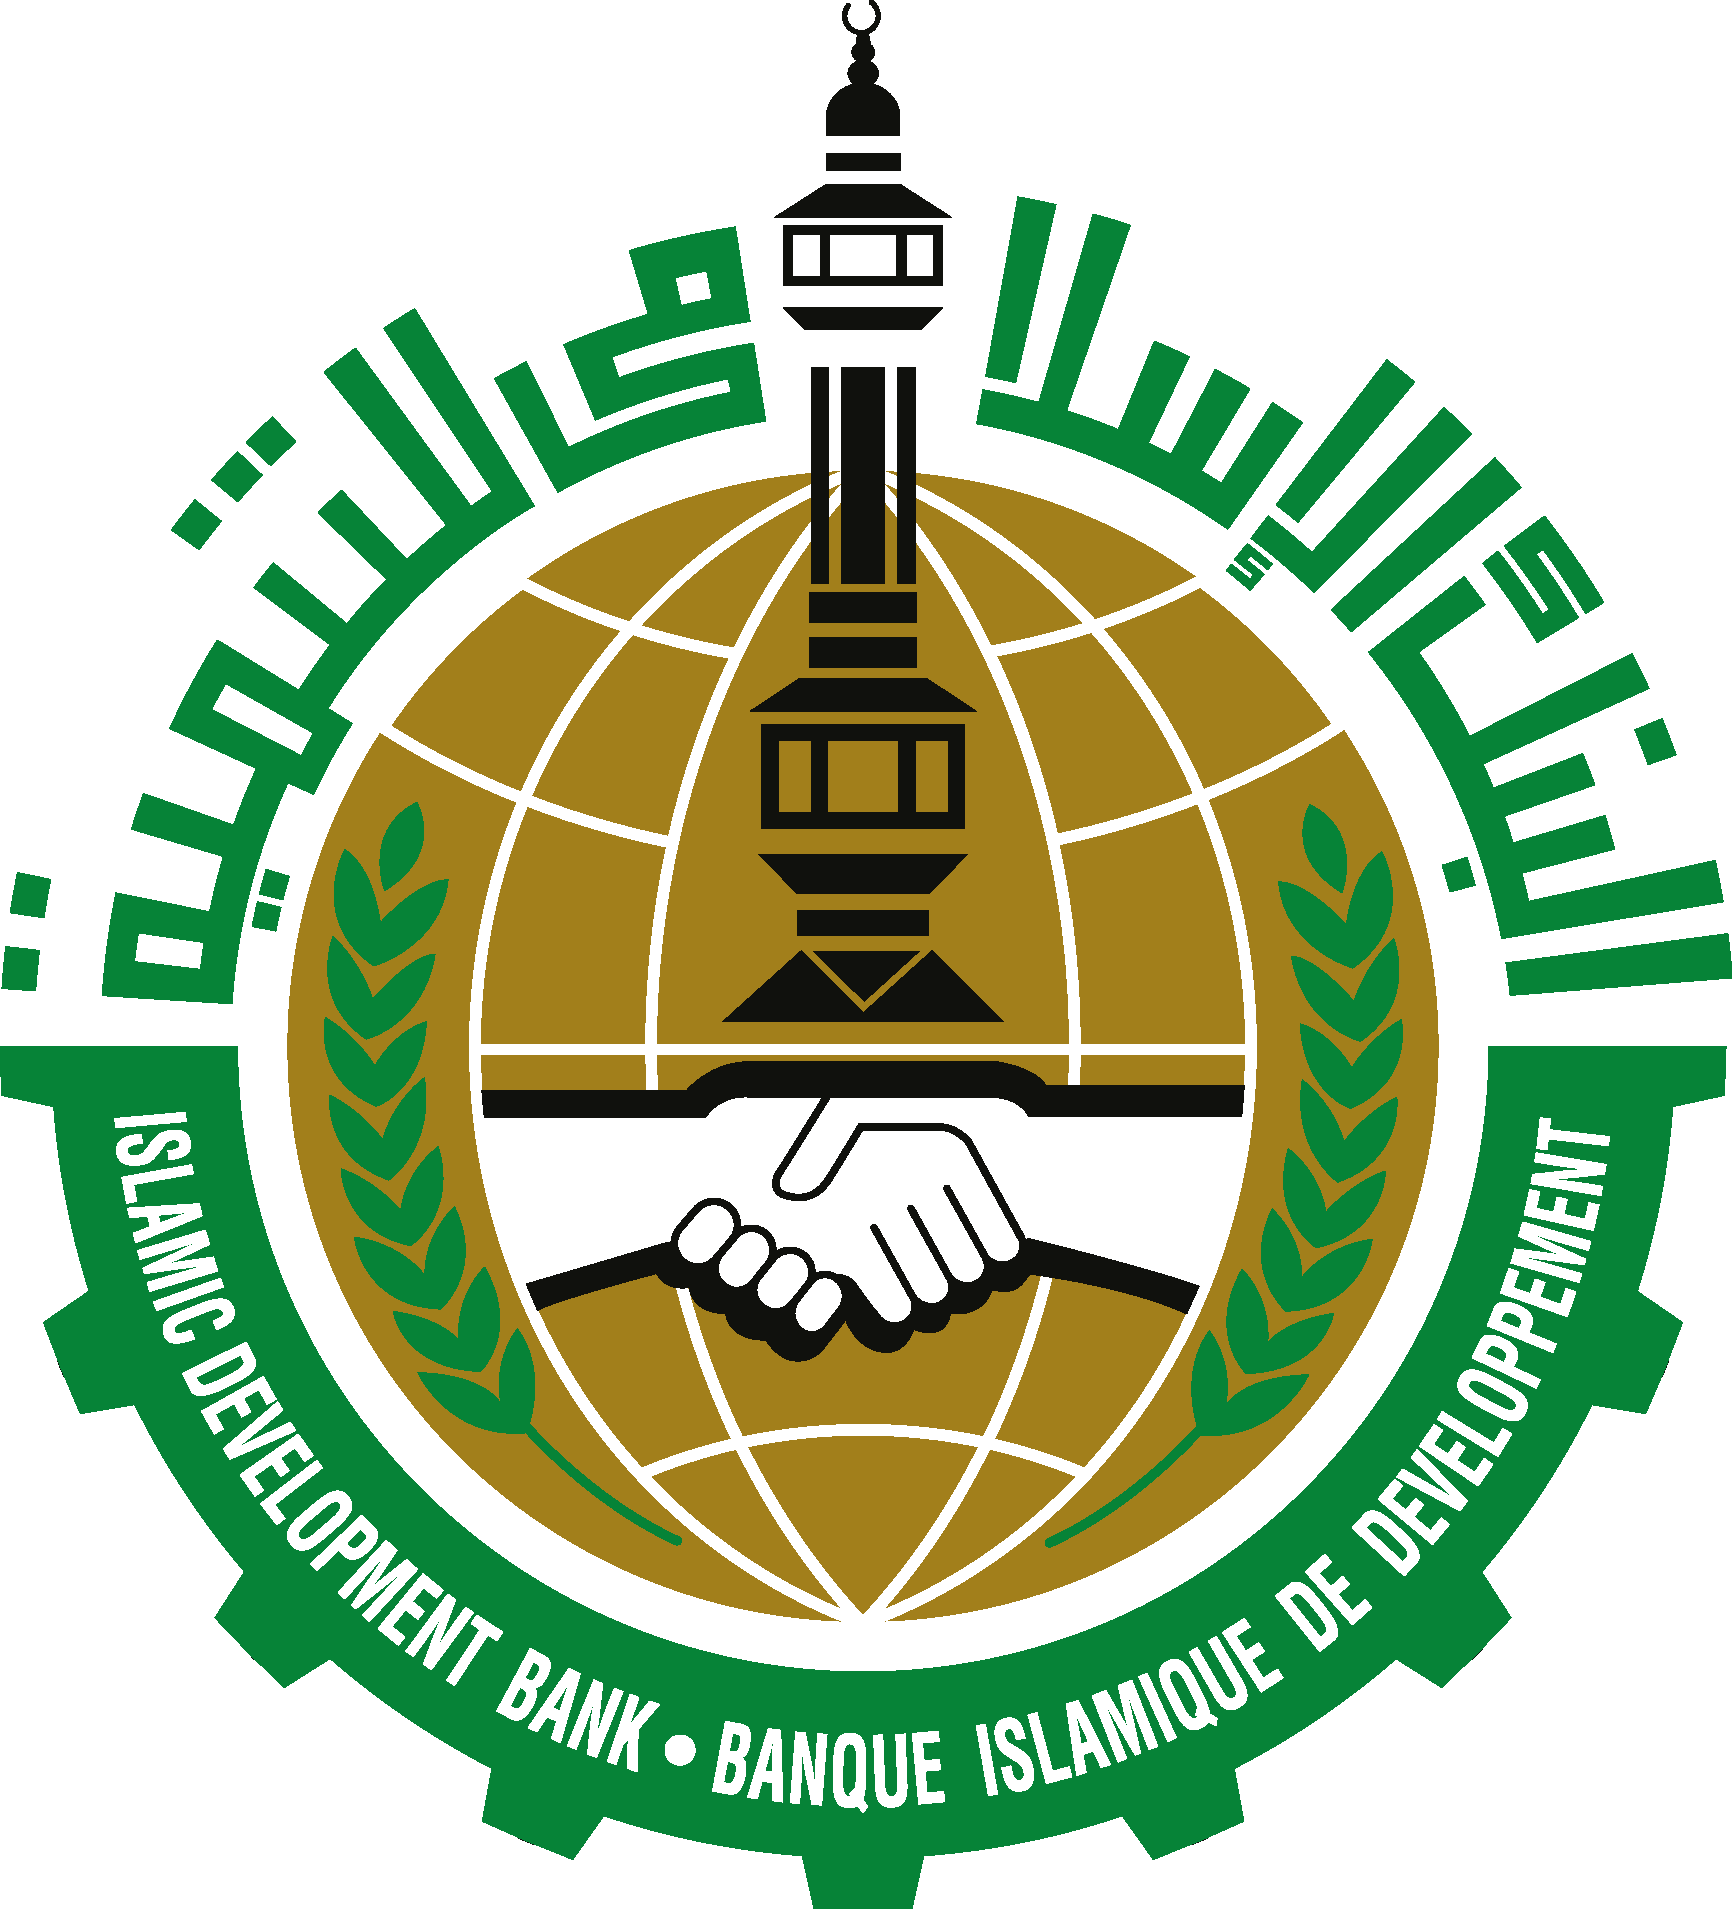 isdb islamic development bank logo vector